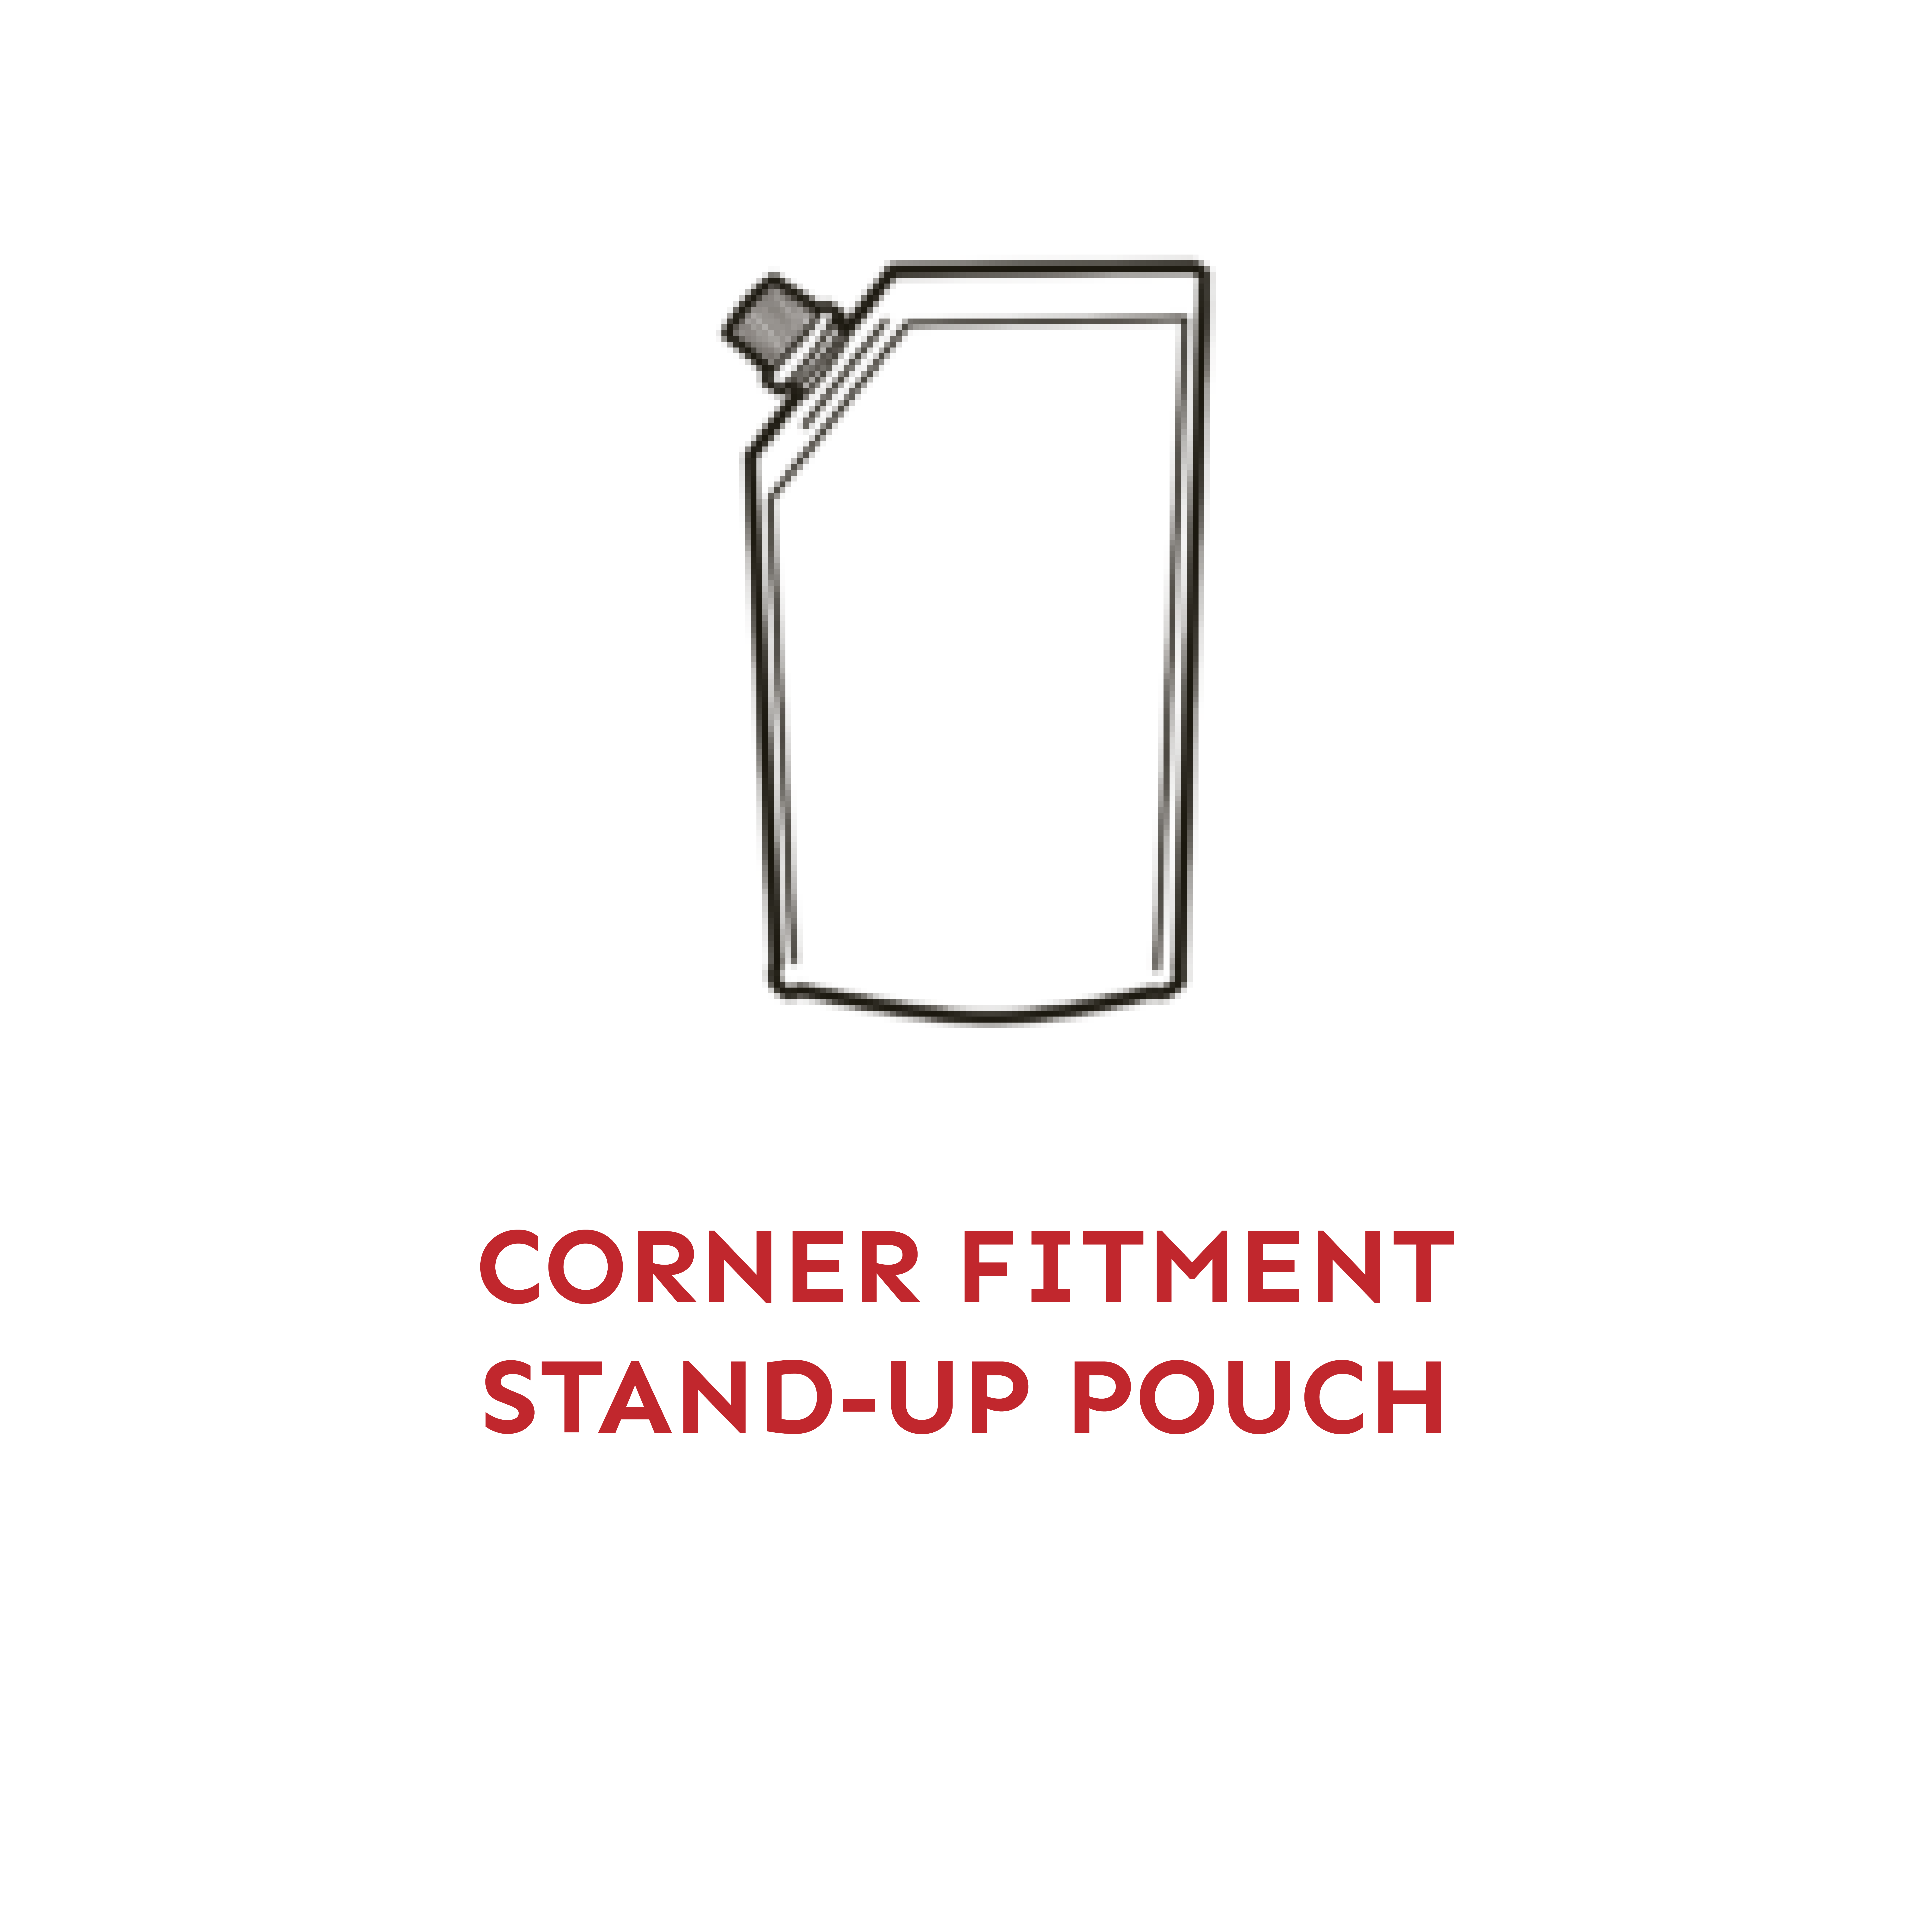 Corner Fitment Stand-Up Pouch Packaging